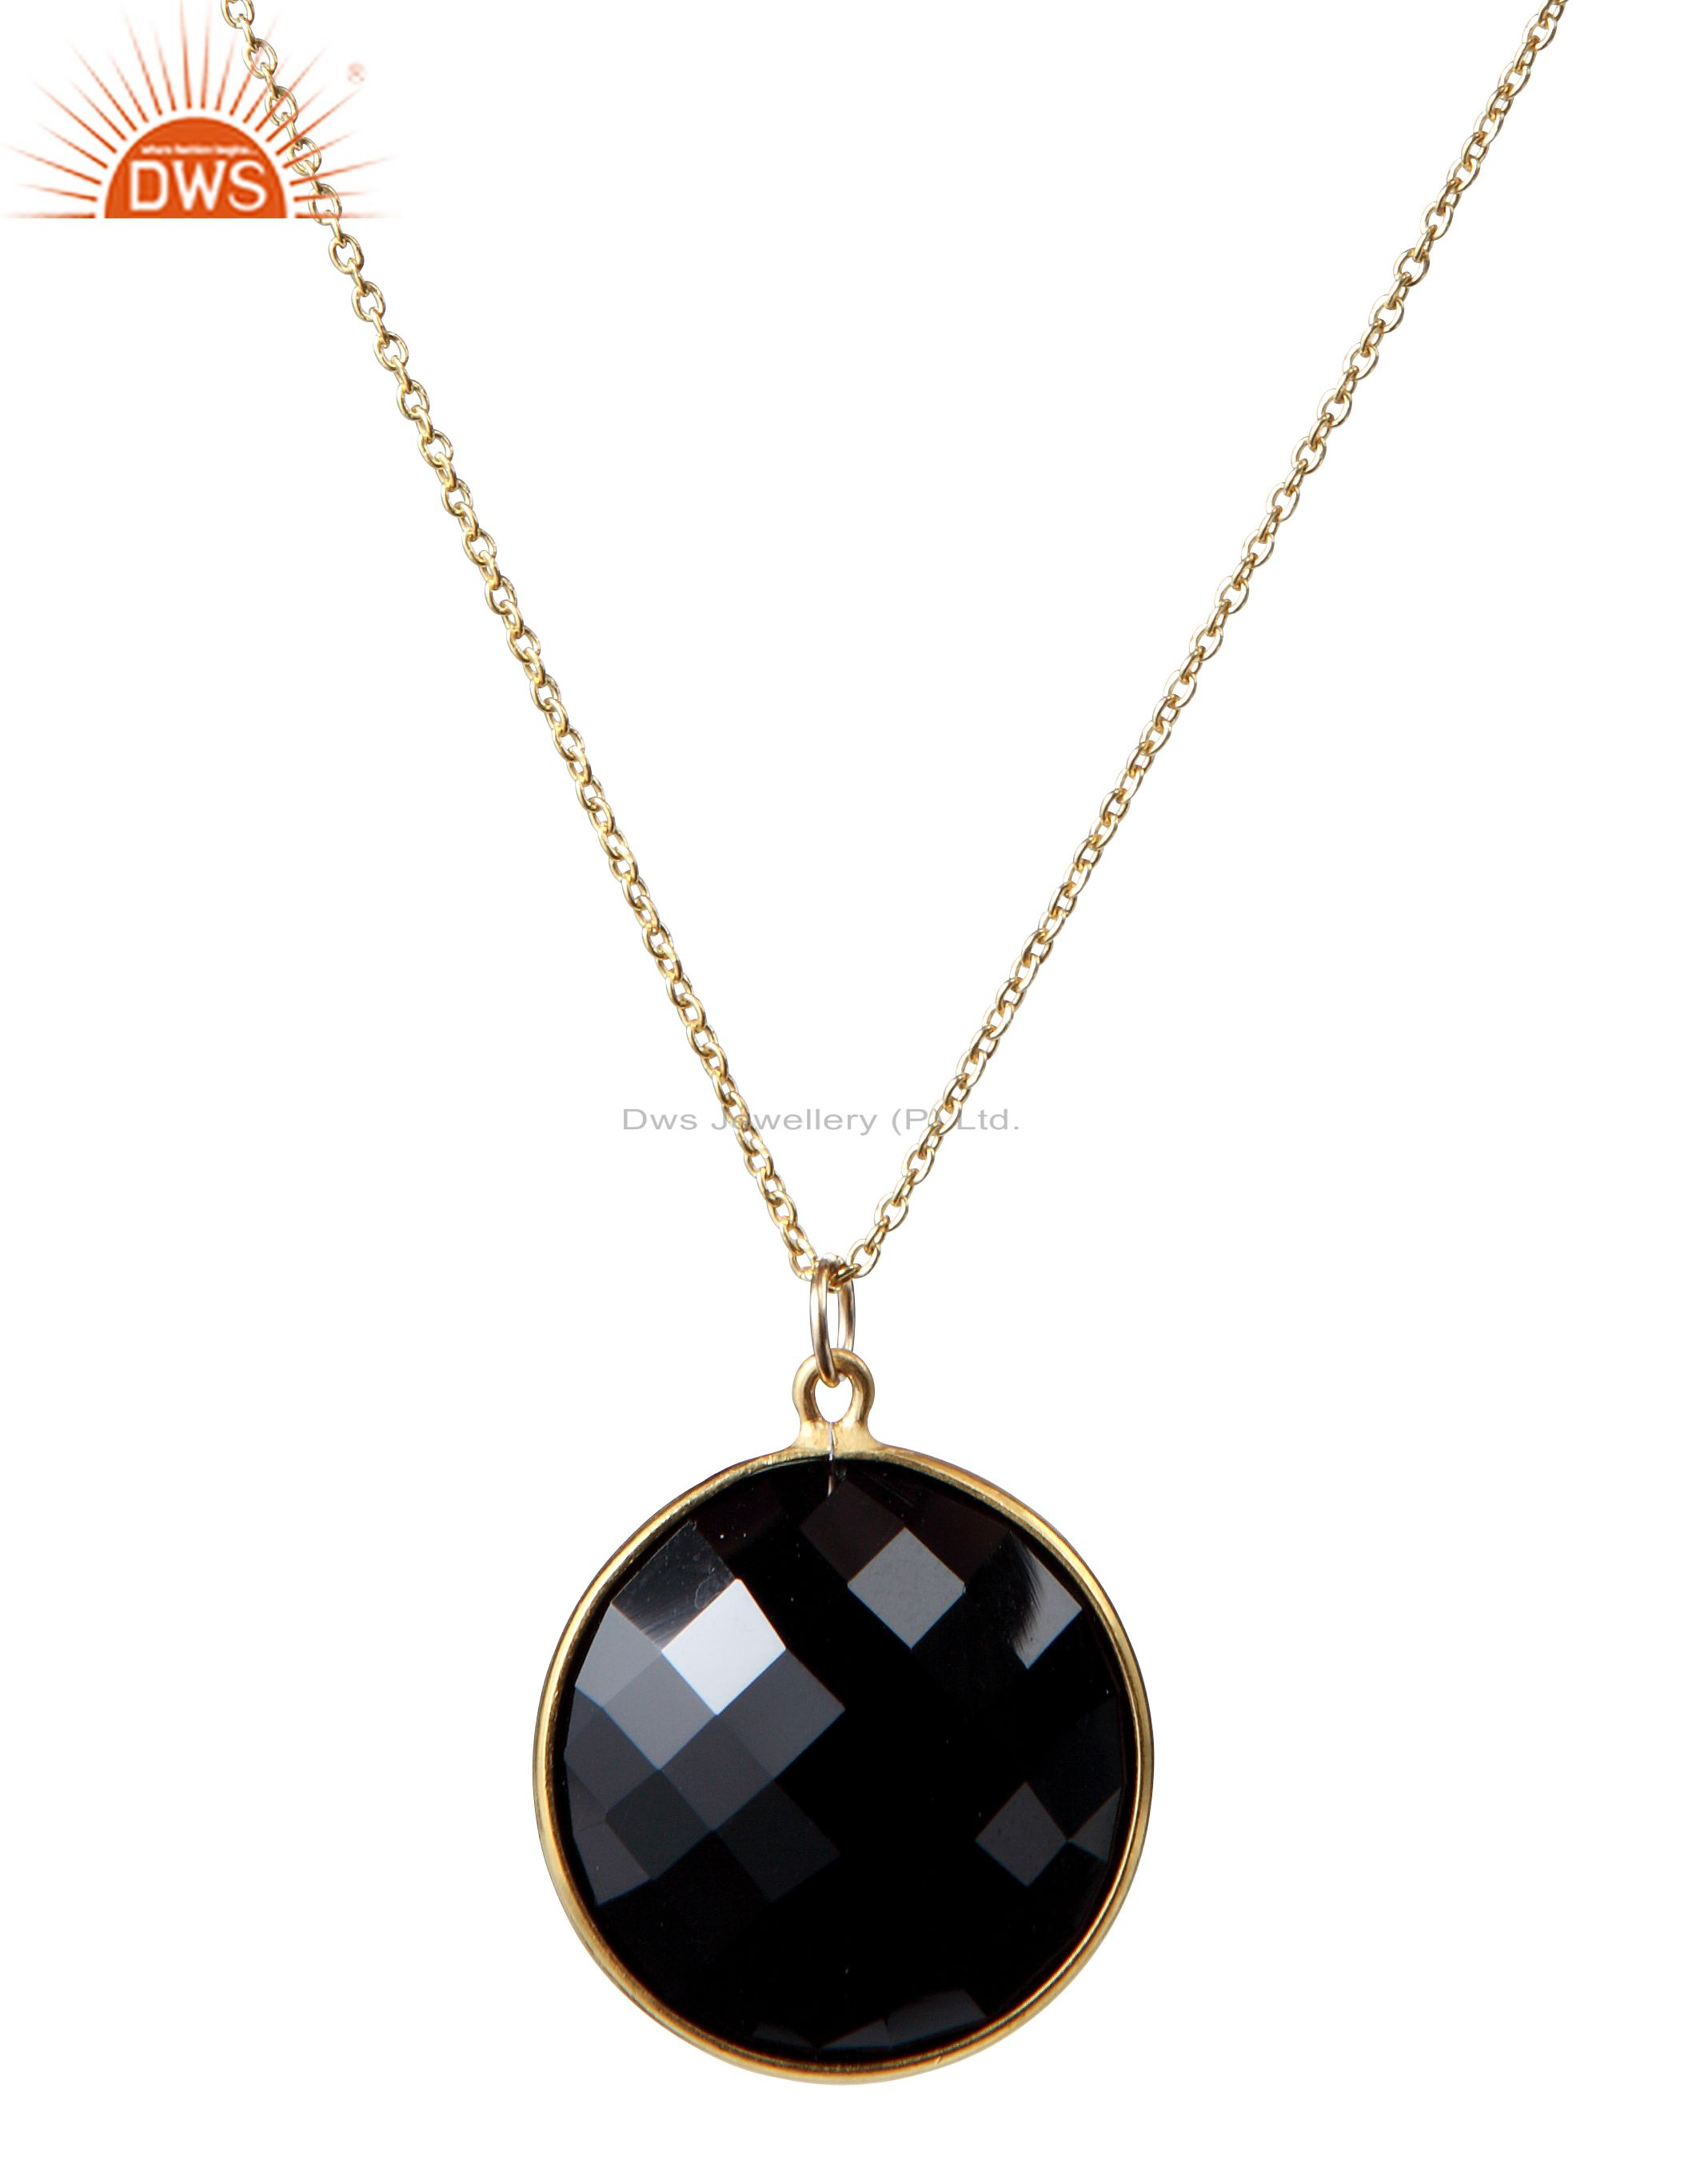 22K Yellow Gold Plated Sterling Silver Black Onyx Bezel Set Pendant With Chain